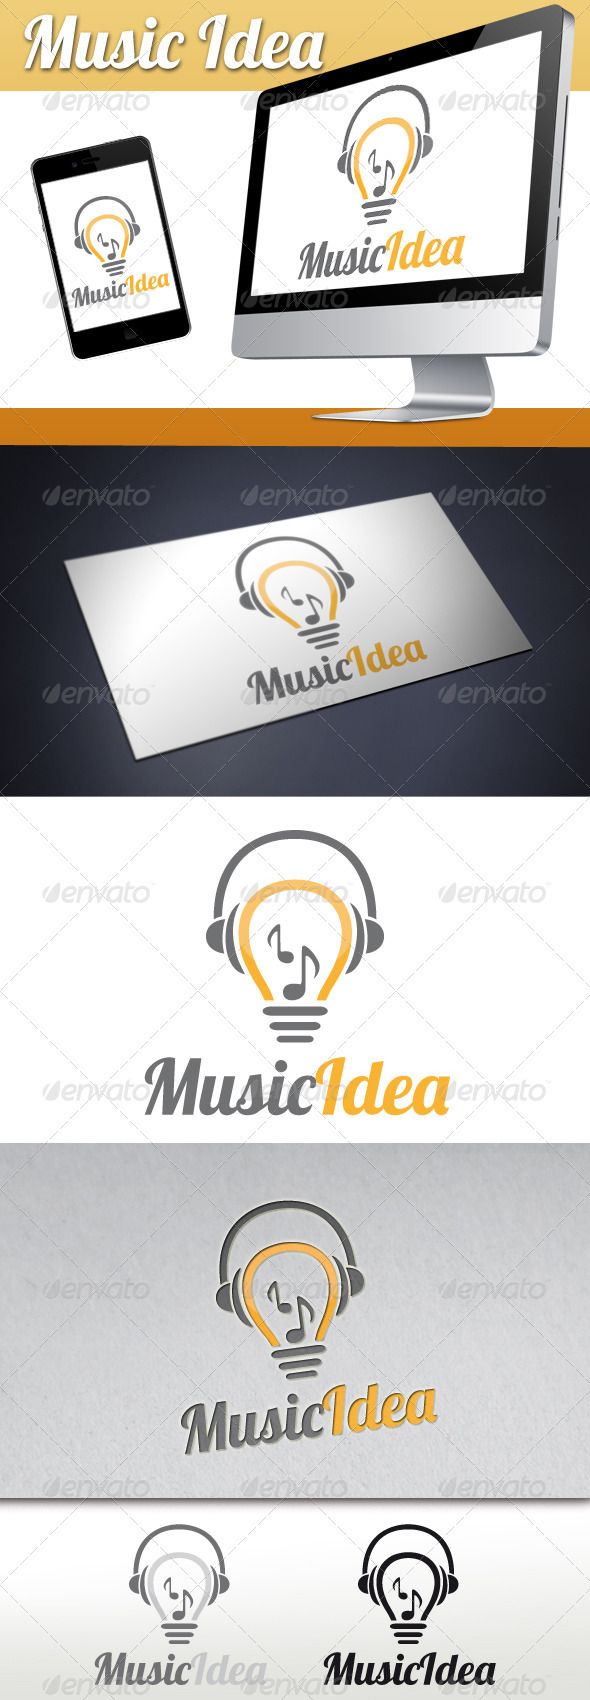 GraphicRiver Music Idea Logo 3324407